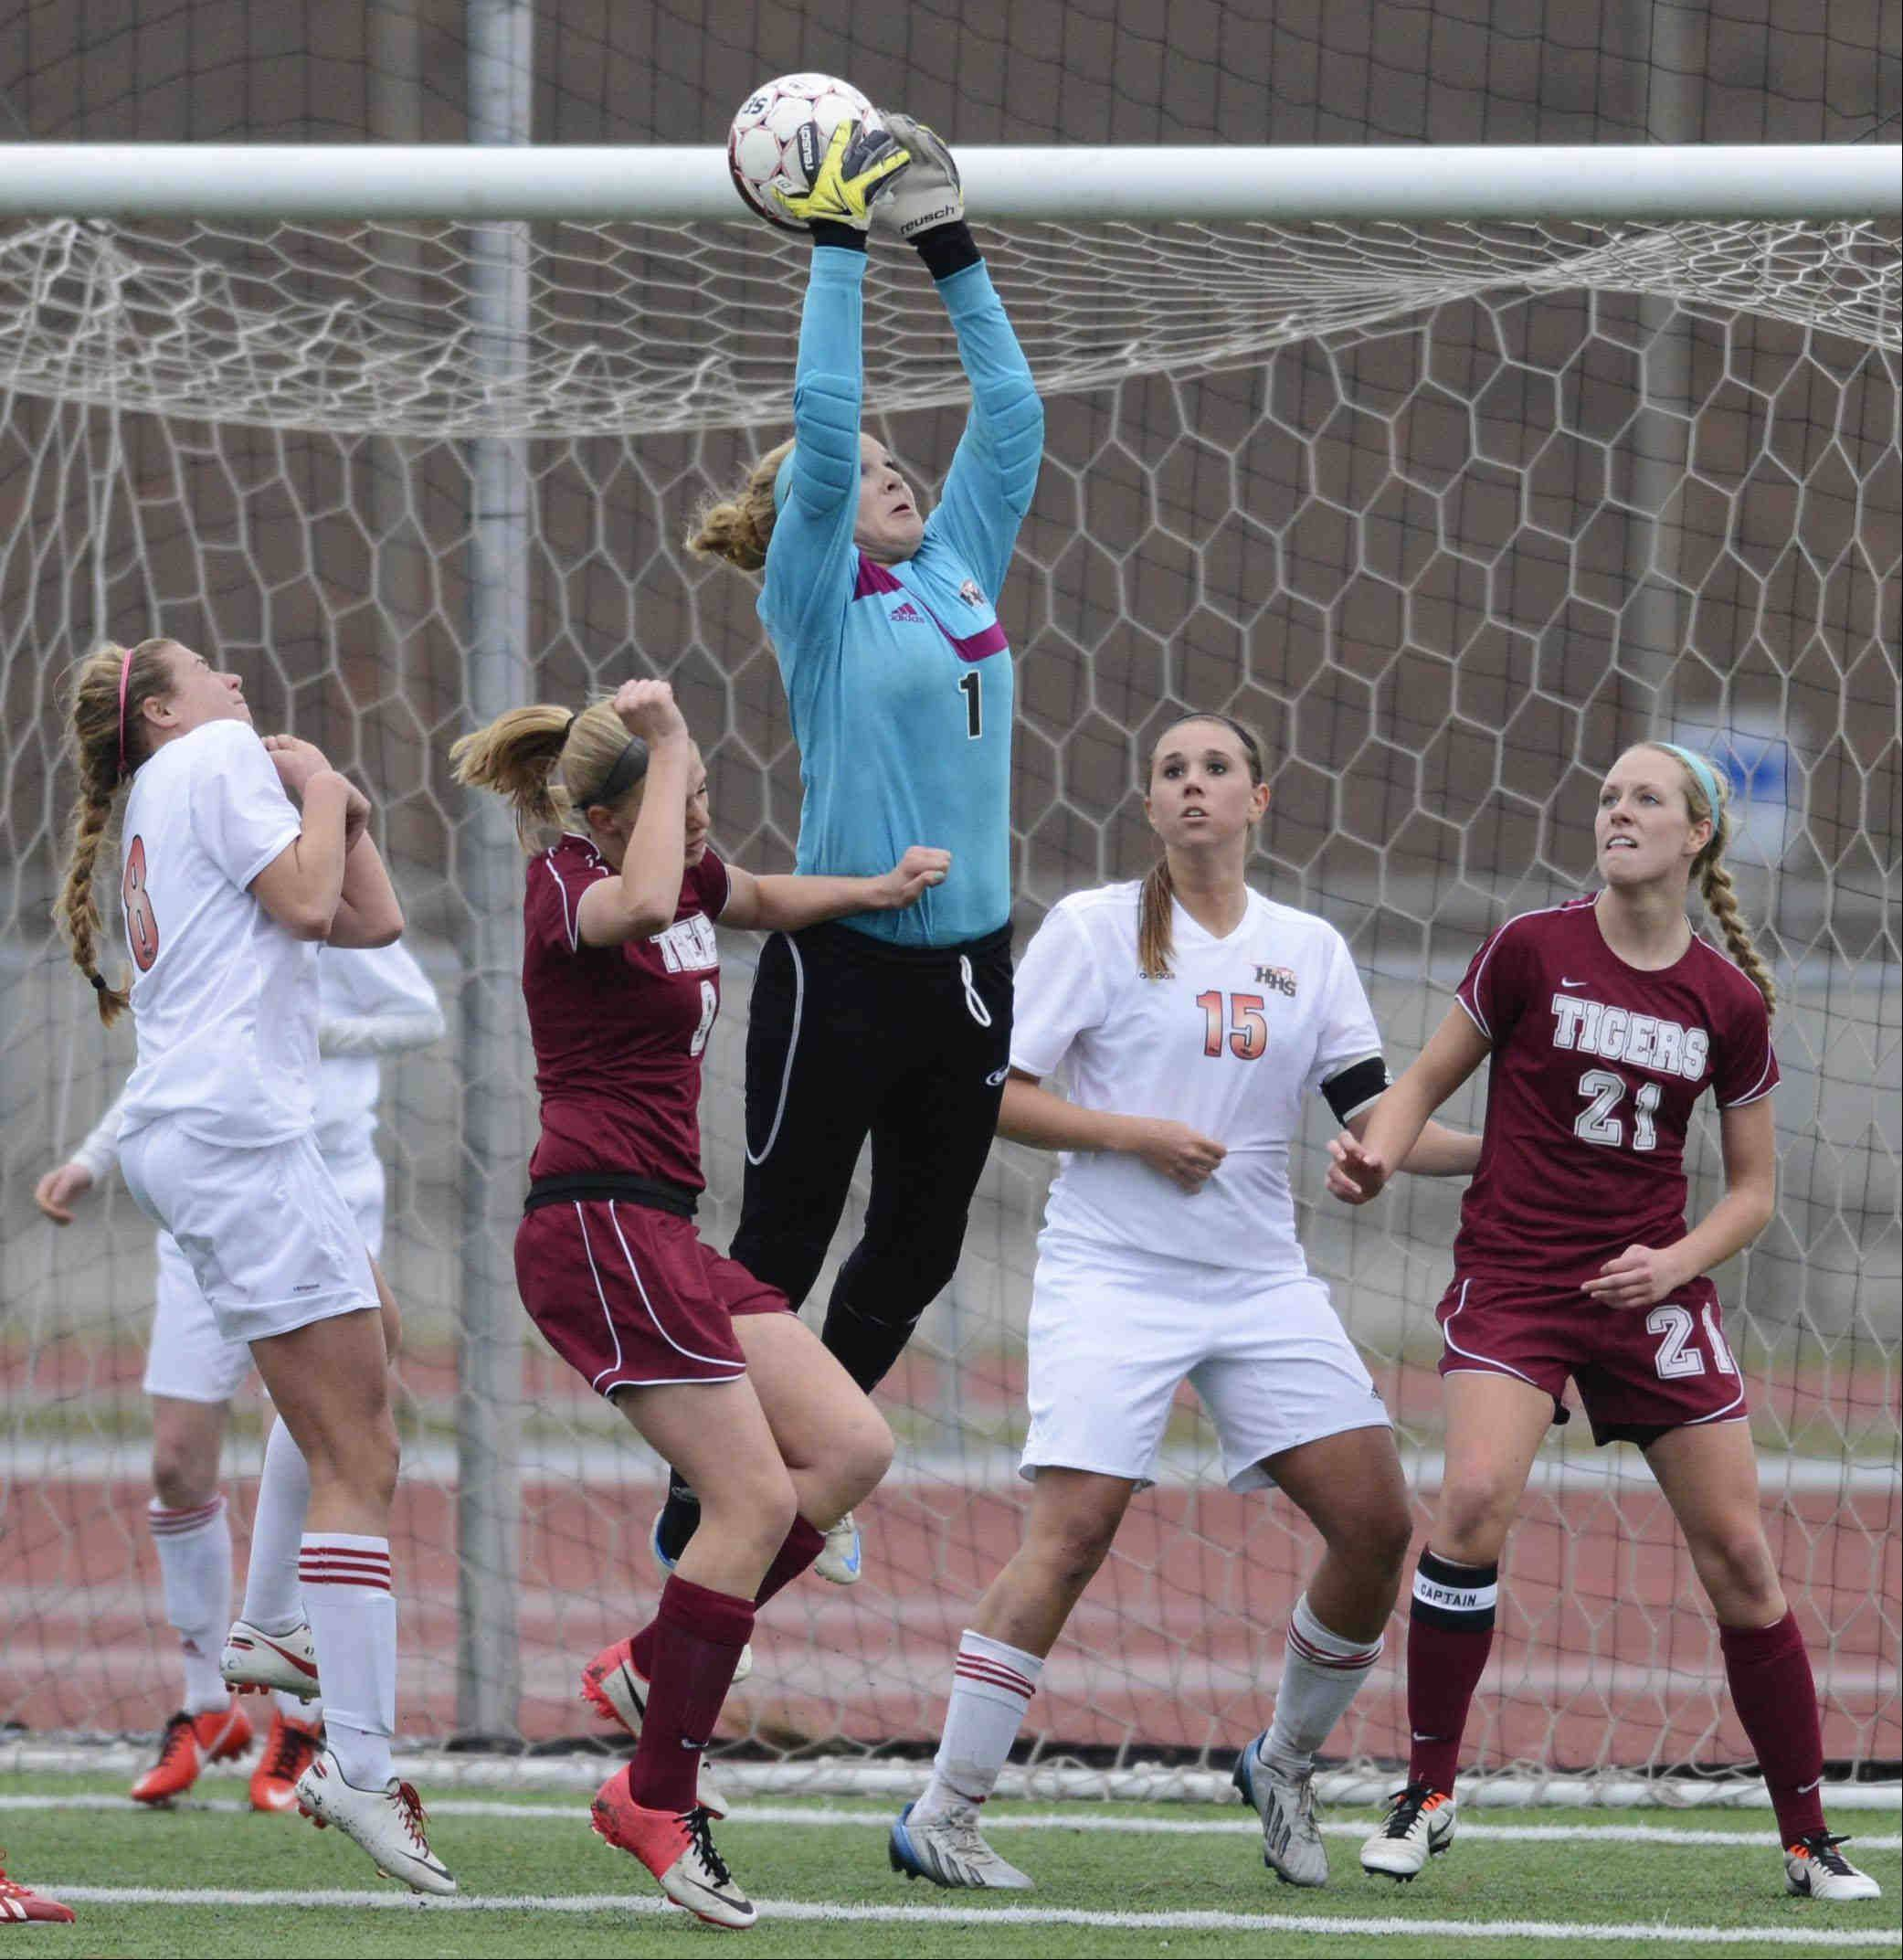 A corner kick slips through the grasp of Huntley goalkeeper Jessica Galason Thursday in the Pepsi Showdown quarterfinal game against Plainfield North at Northern Illinois University in DeKalb. The ball bounced away and no goal was scored on the play.